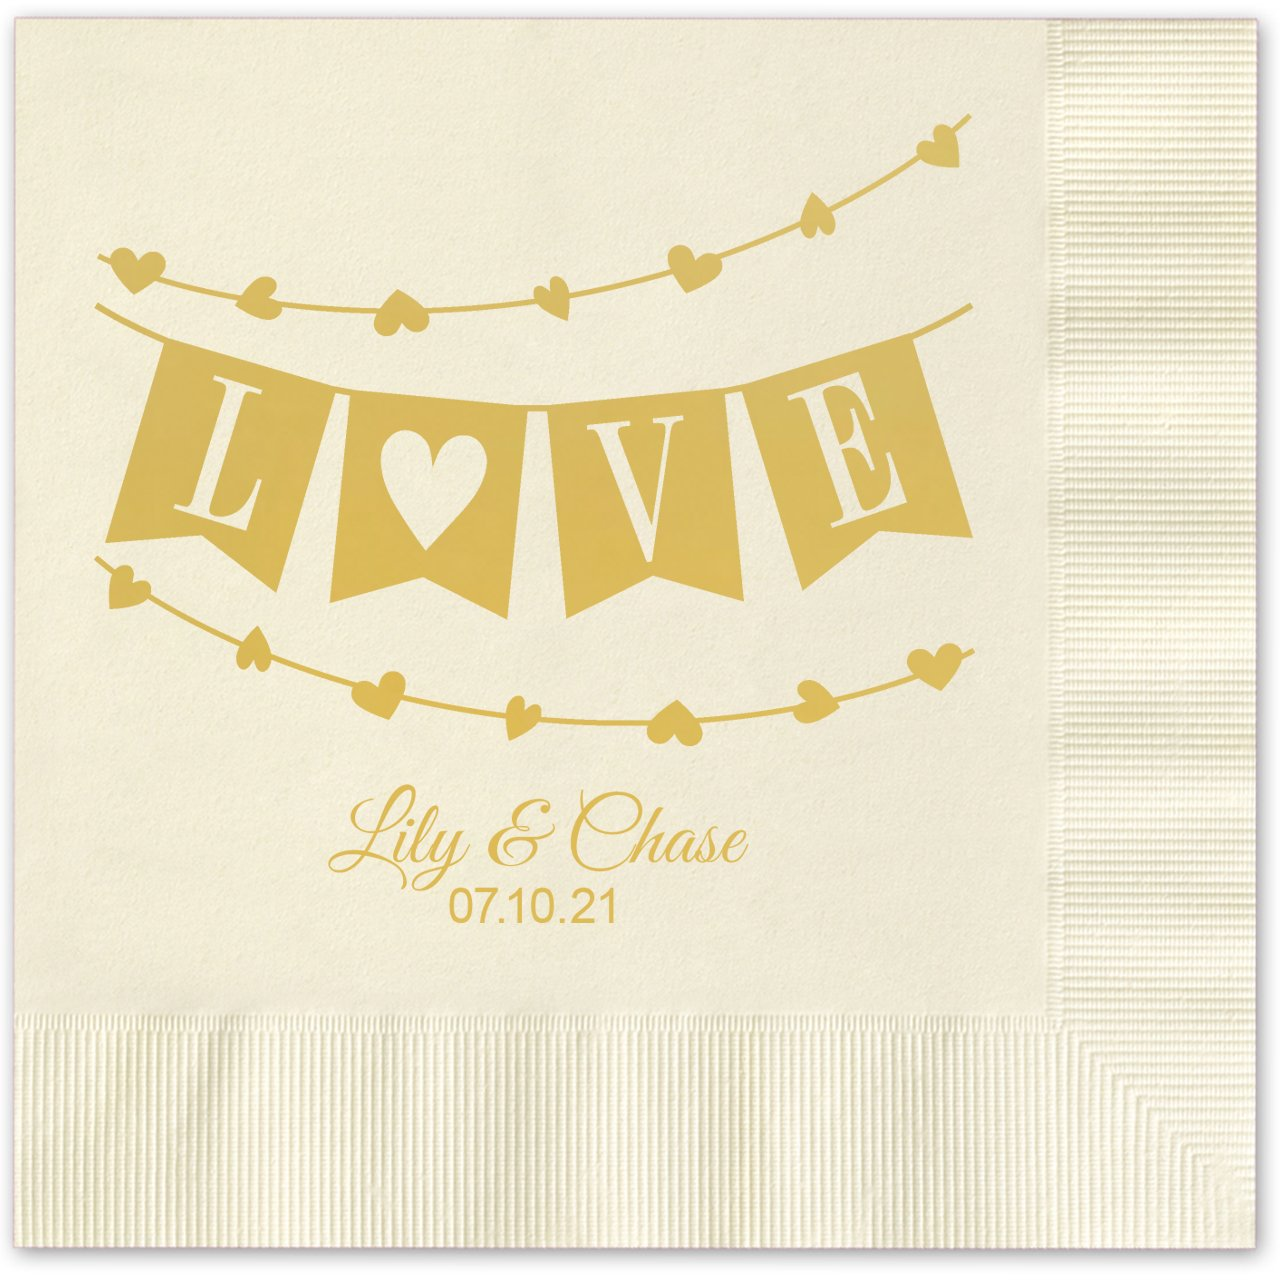 Banner Love Personalized Beverage Cocktail Napkins - 100 Custom Printed EcruPaper Napkins with choice of foil by Canopy Street (Image #2)